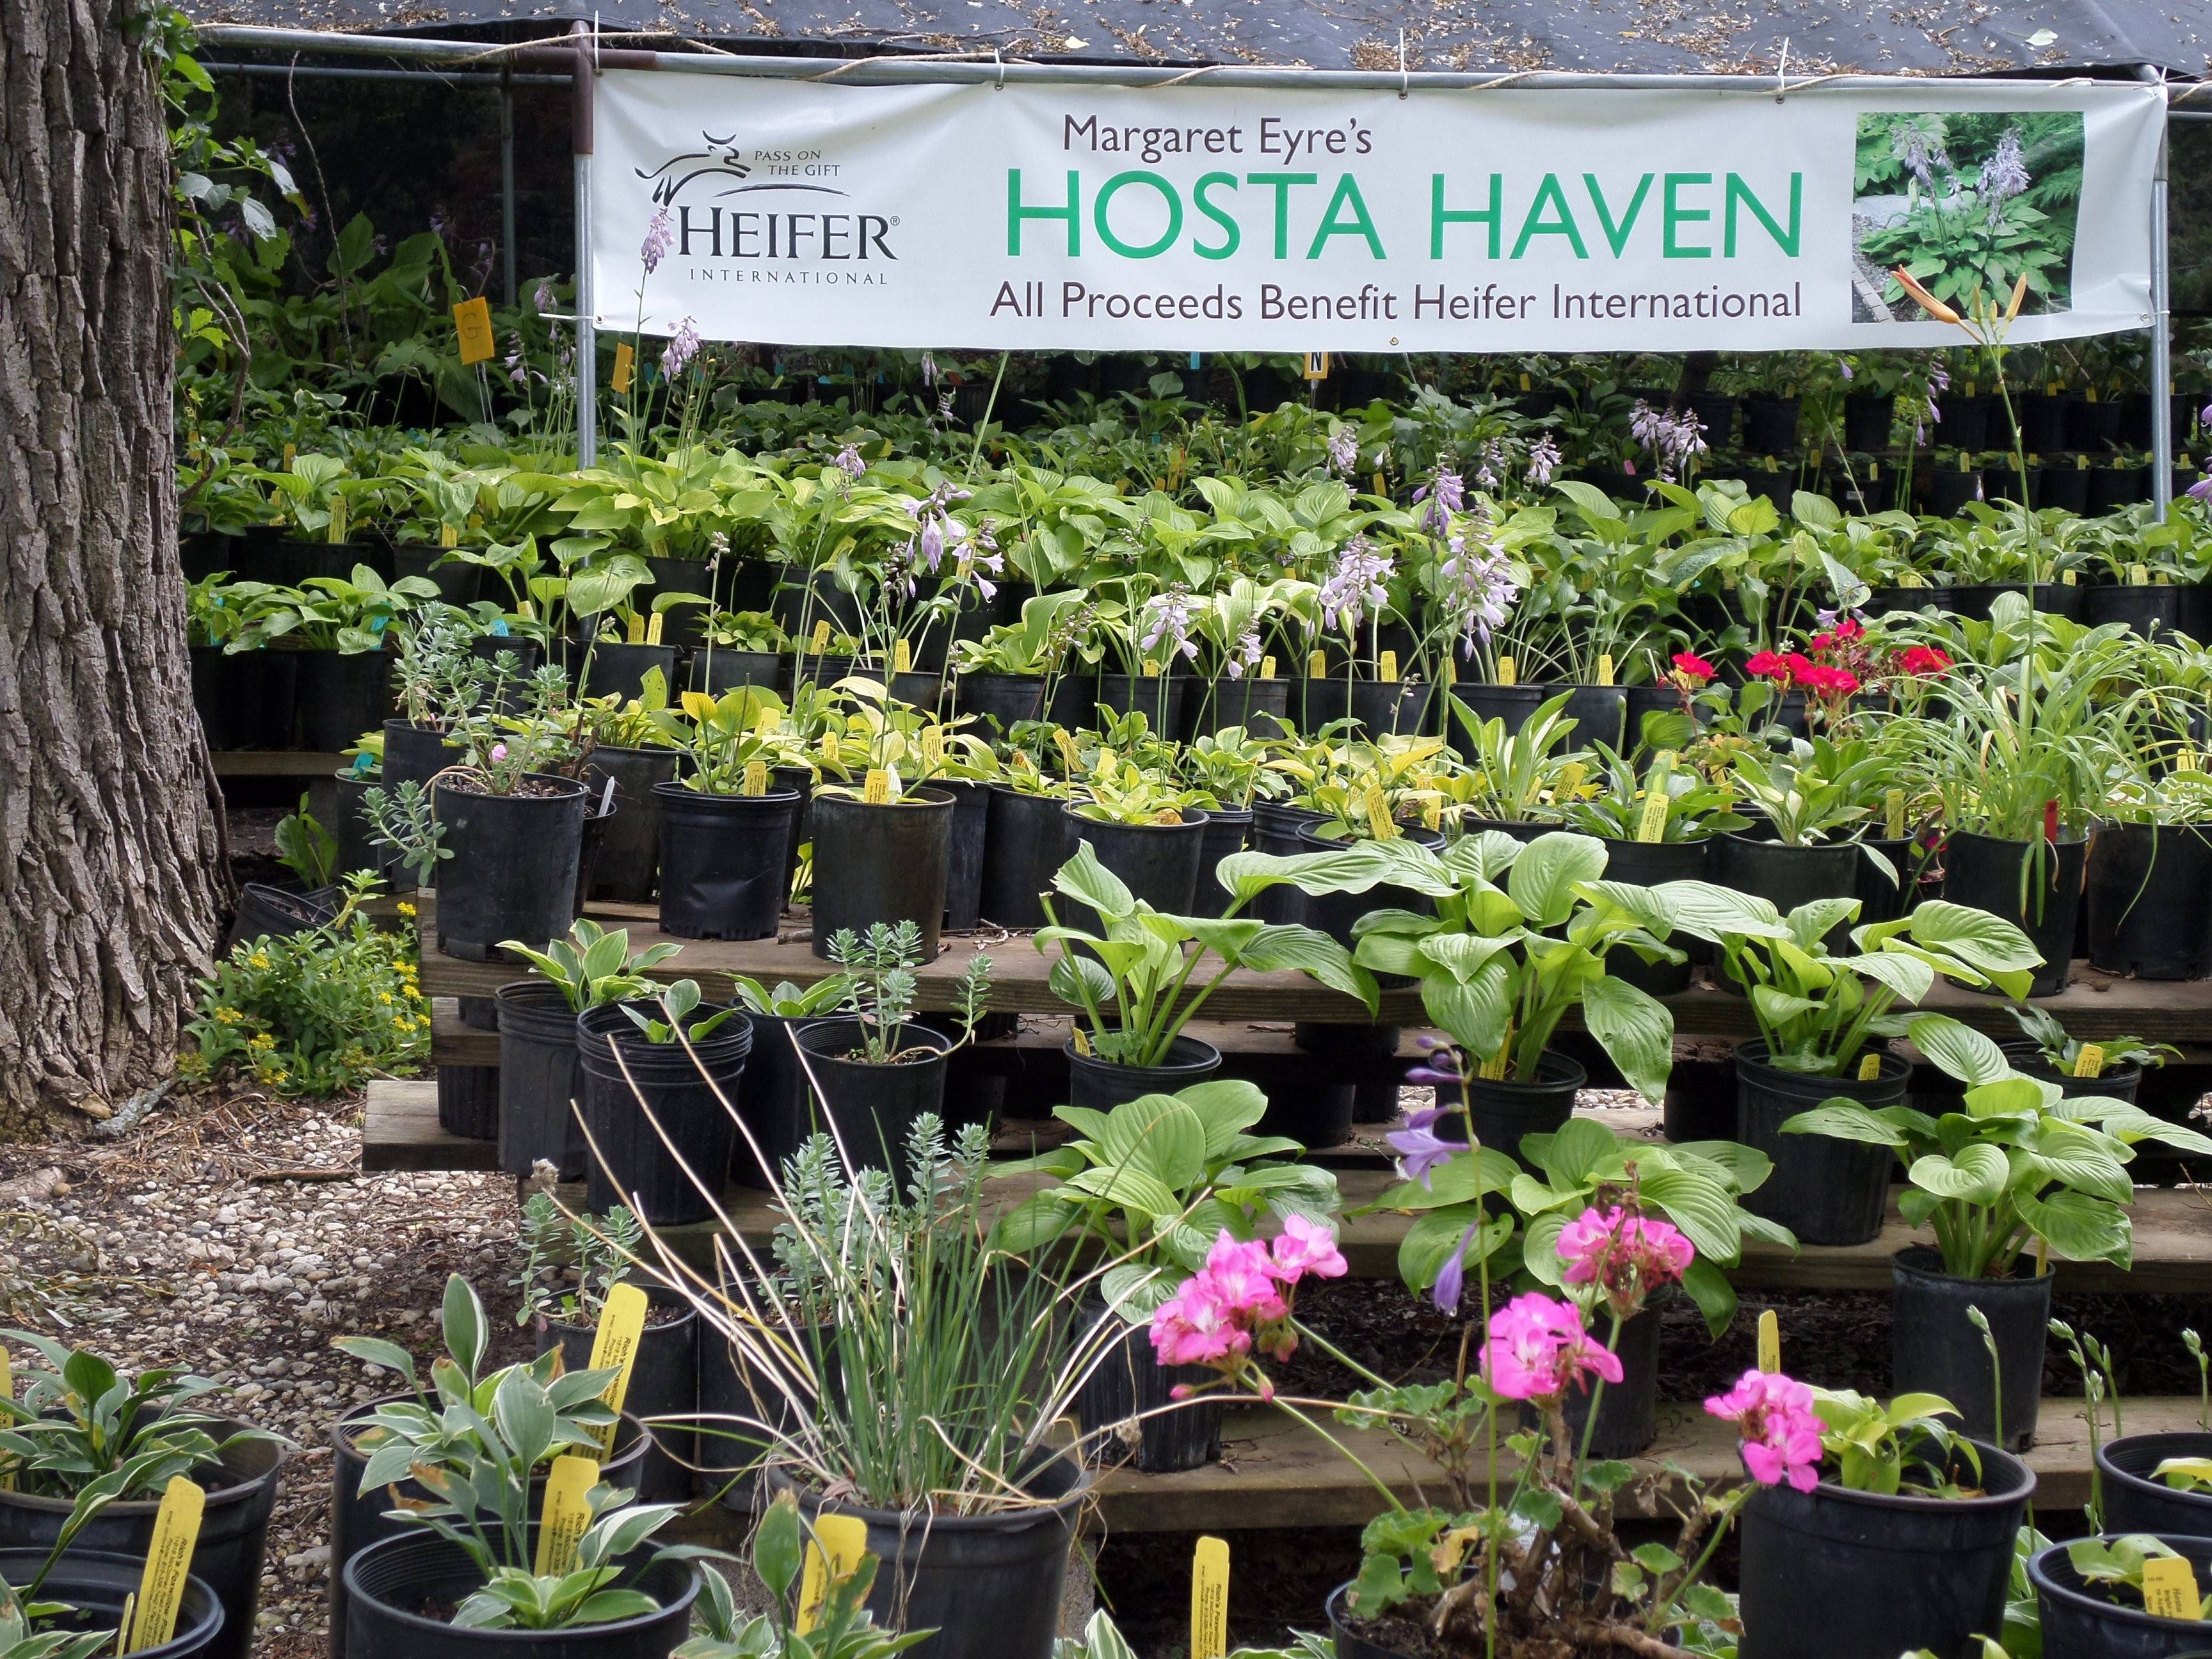 Hosta Sale and Bolivian Arts & Crafts Fundraiser will be 9 a.m. to 4 p.m. Saturday, Aug. 23, at Rich's Foxwillow Pines Nursery Inc. in Woodstock